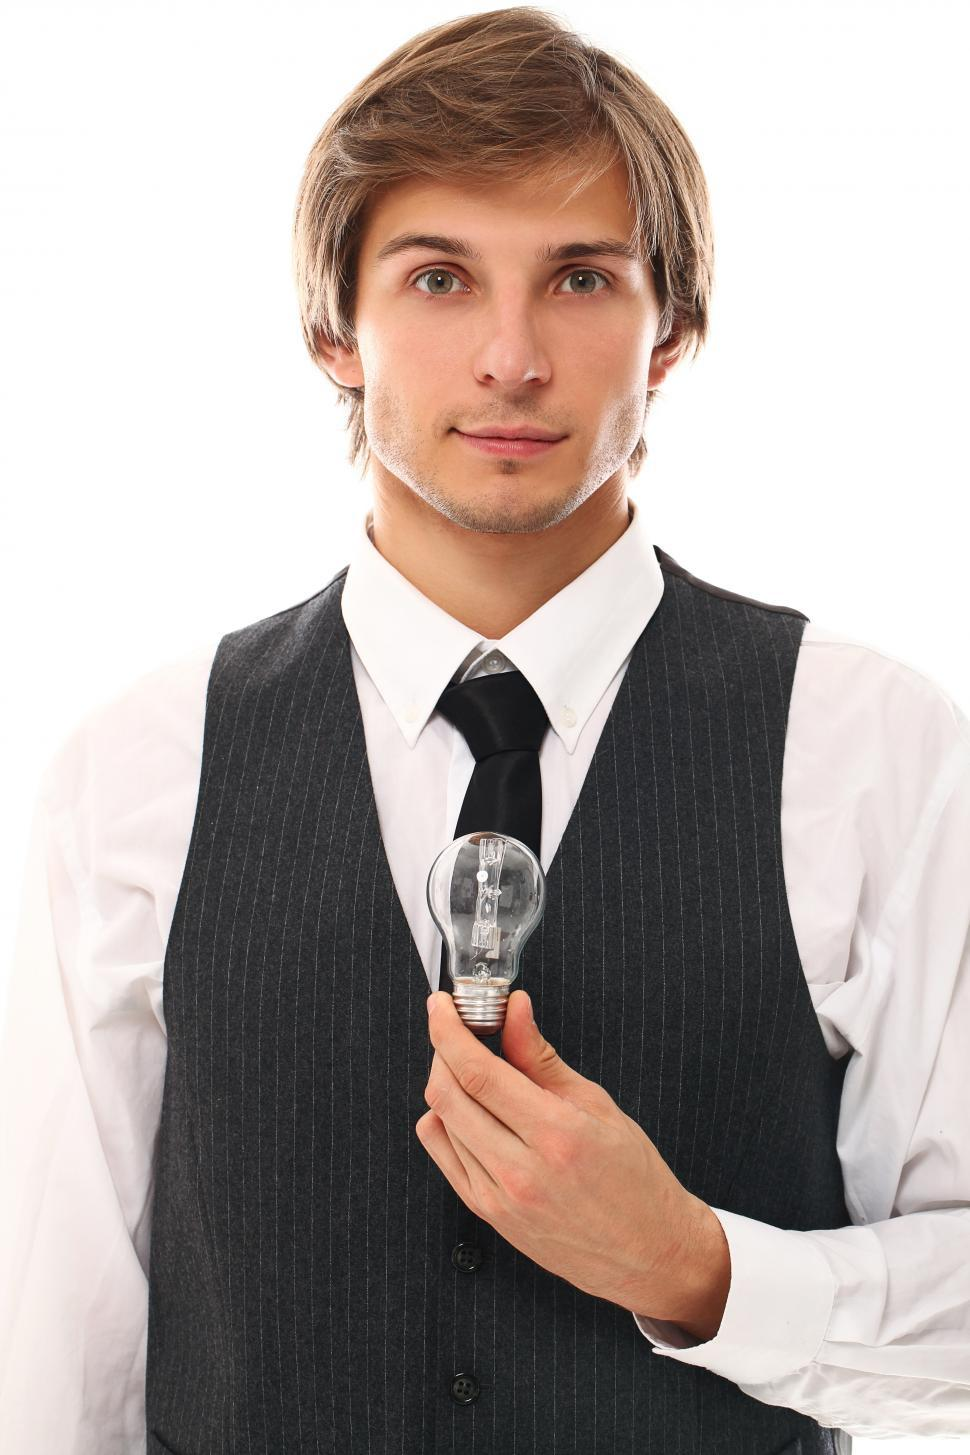 Download Free Stock Photo of Idea. Well dressed man holding a light bulb.